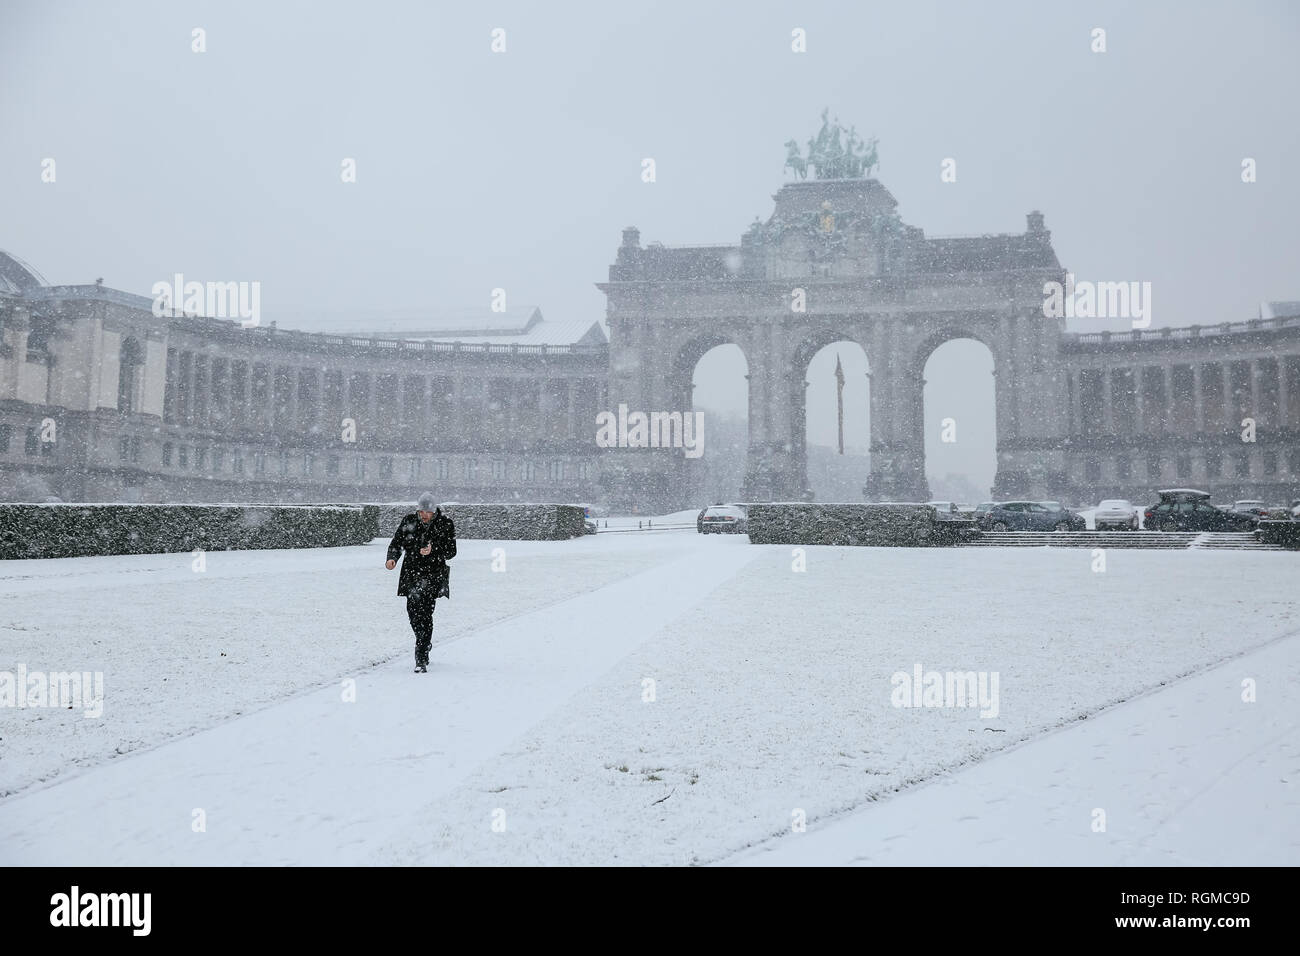 Brussels, Belgium. 30th Jan, 2019. A man walks in the Park of the Fiftieth Anniversary in Brussels, Belgium, Jan. 30, 2019. A snowfall hit Brussels on Wednesday. Credit: Zhang Cheng/Xinhua/Alamy Live News - Stock Image